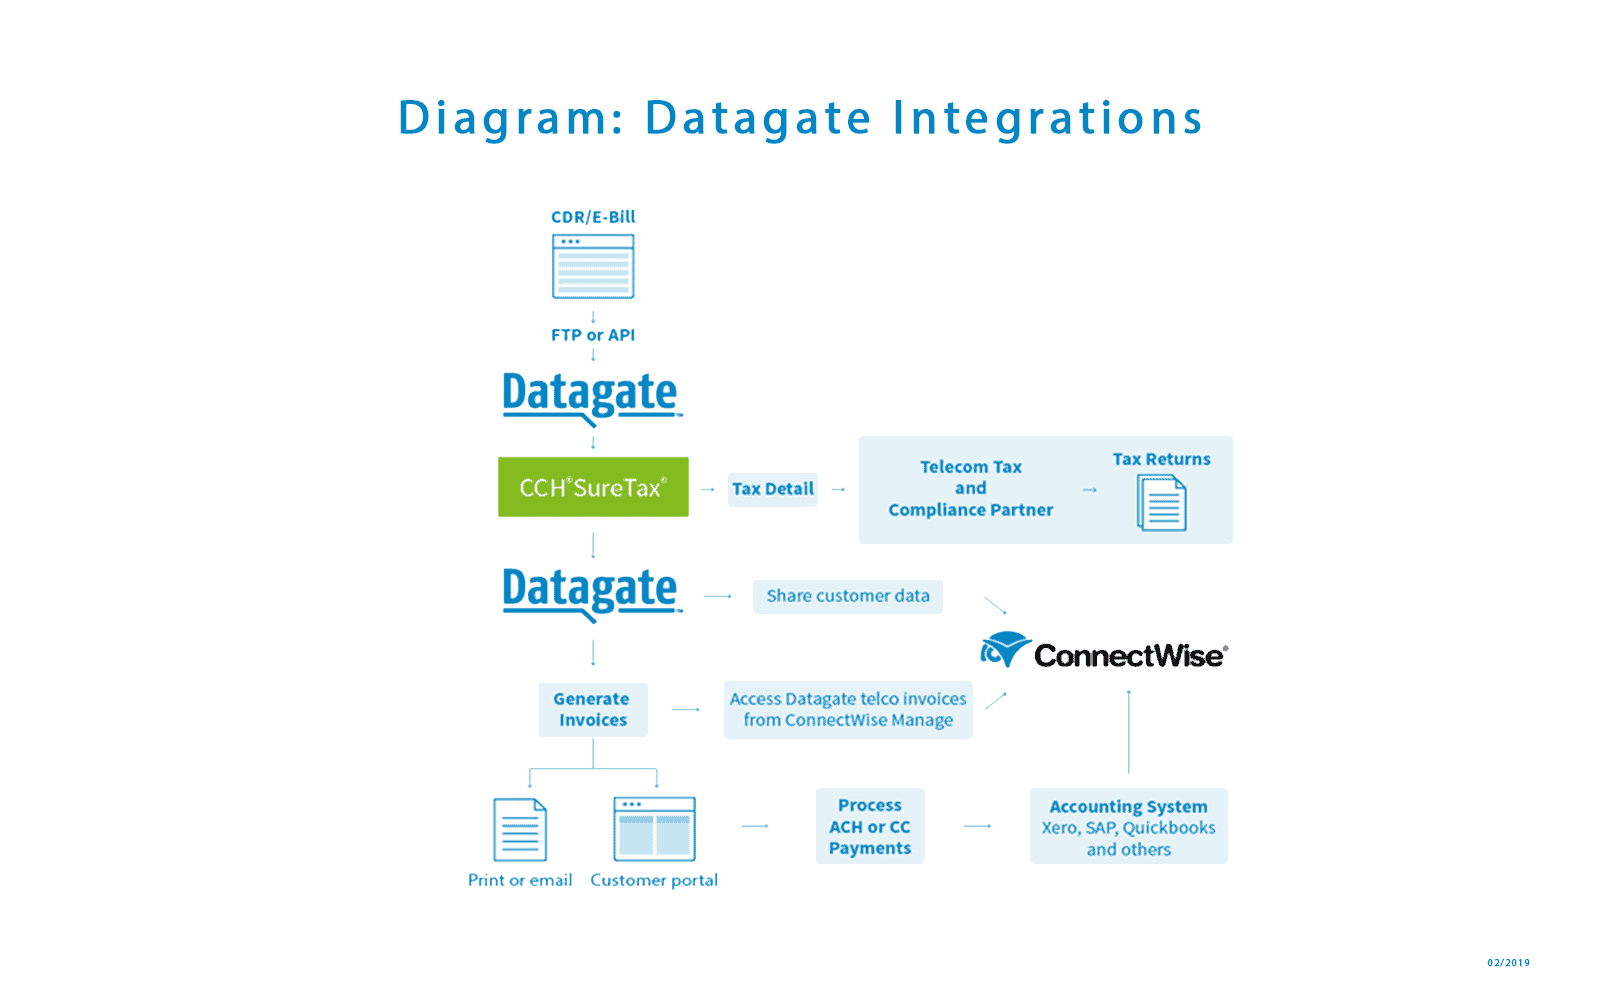 Diagram: Datagate integrations | February 2019